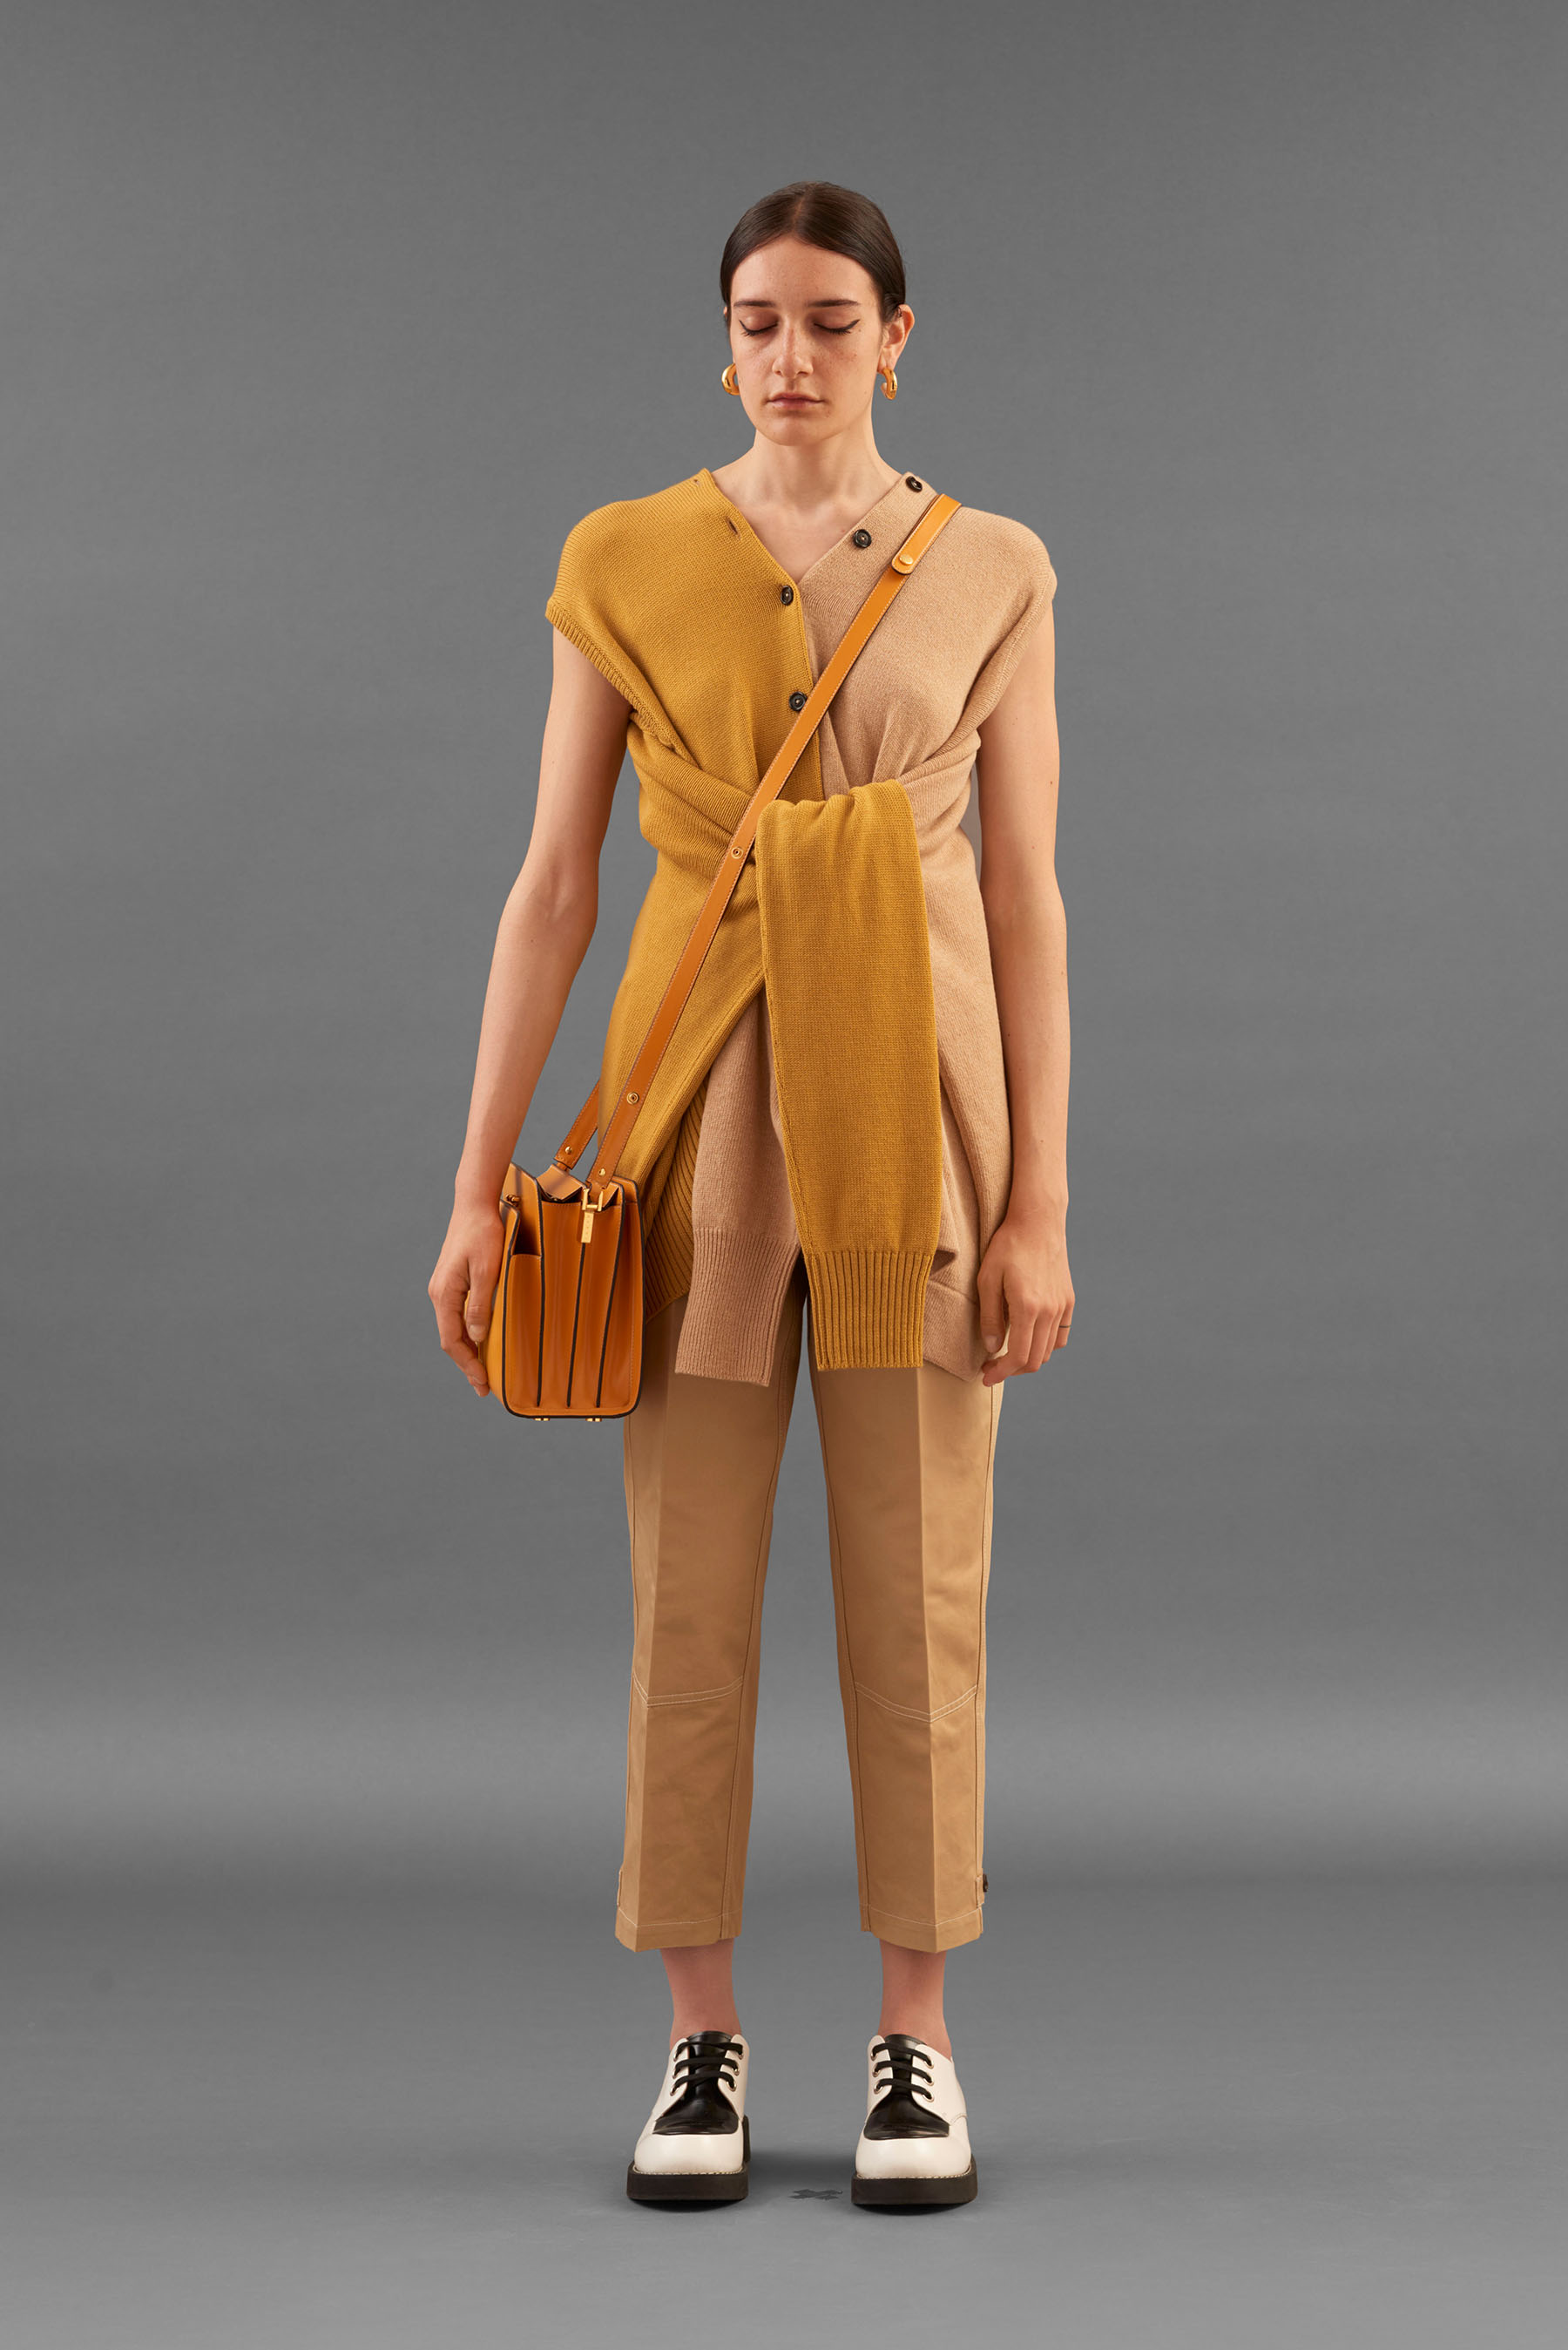 Marni Resort 2020 Fashion Collection